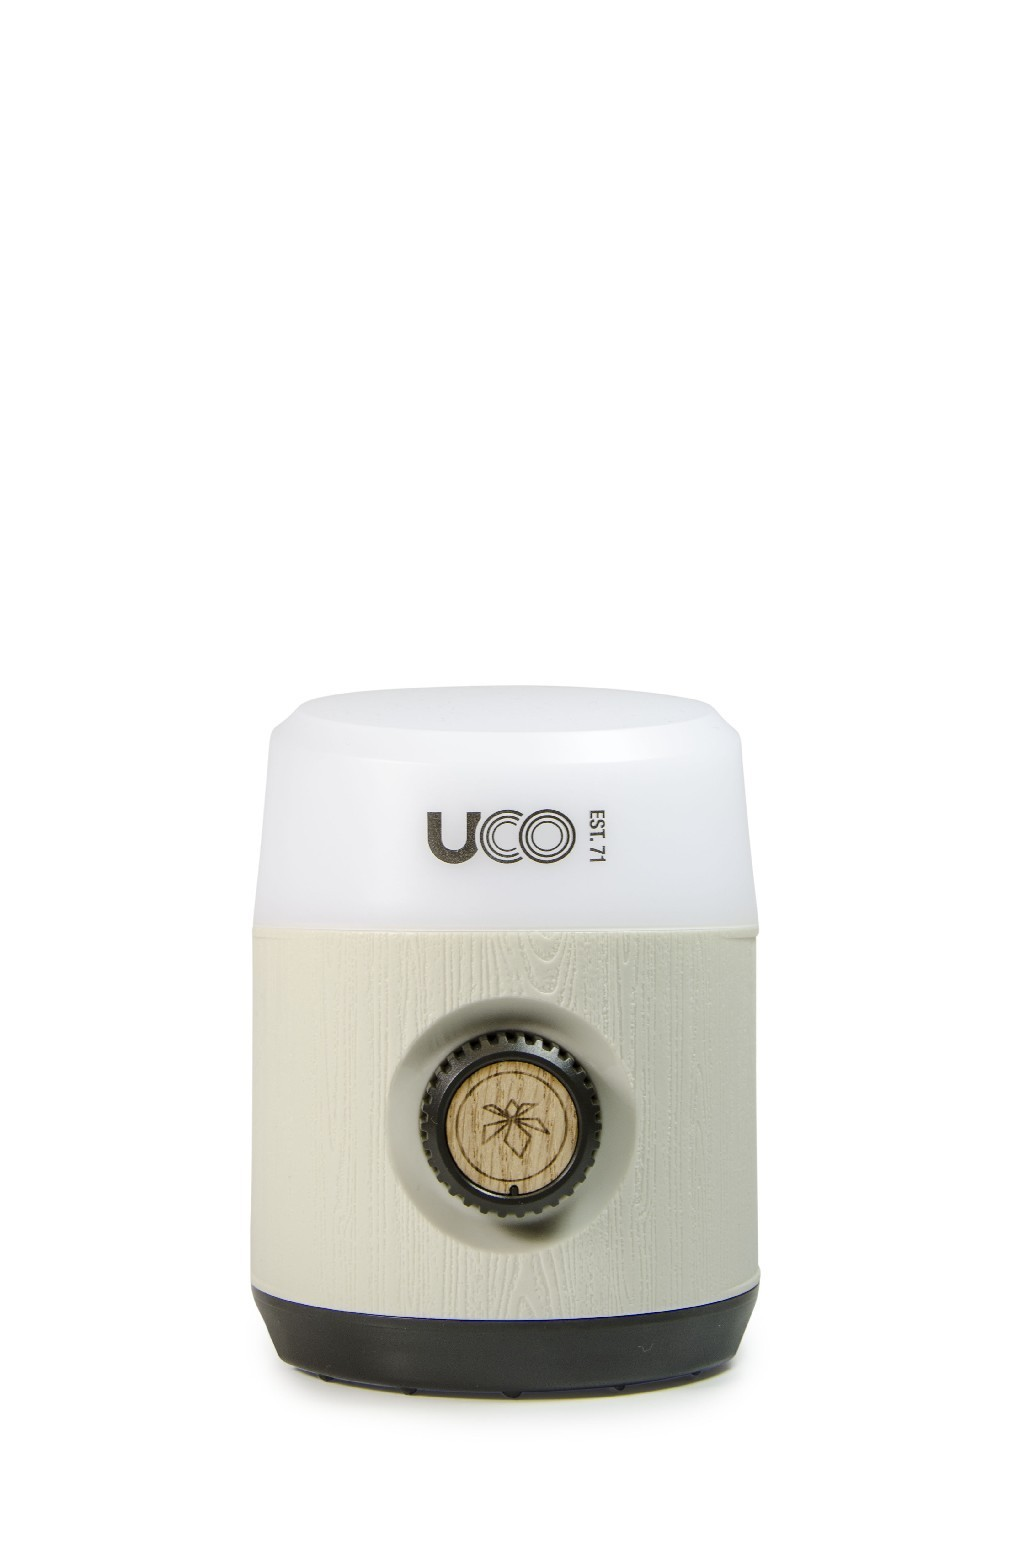 Uco Rhody Led Laterne Leuchte Outdoor Dimmbar Magnetisch